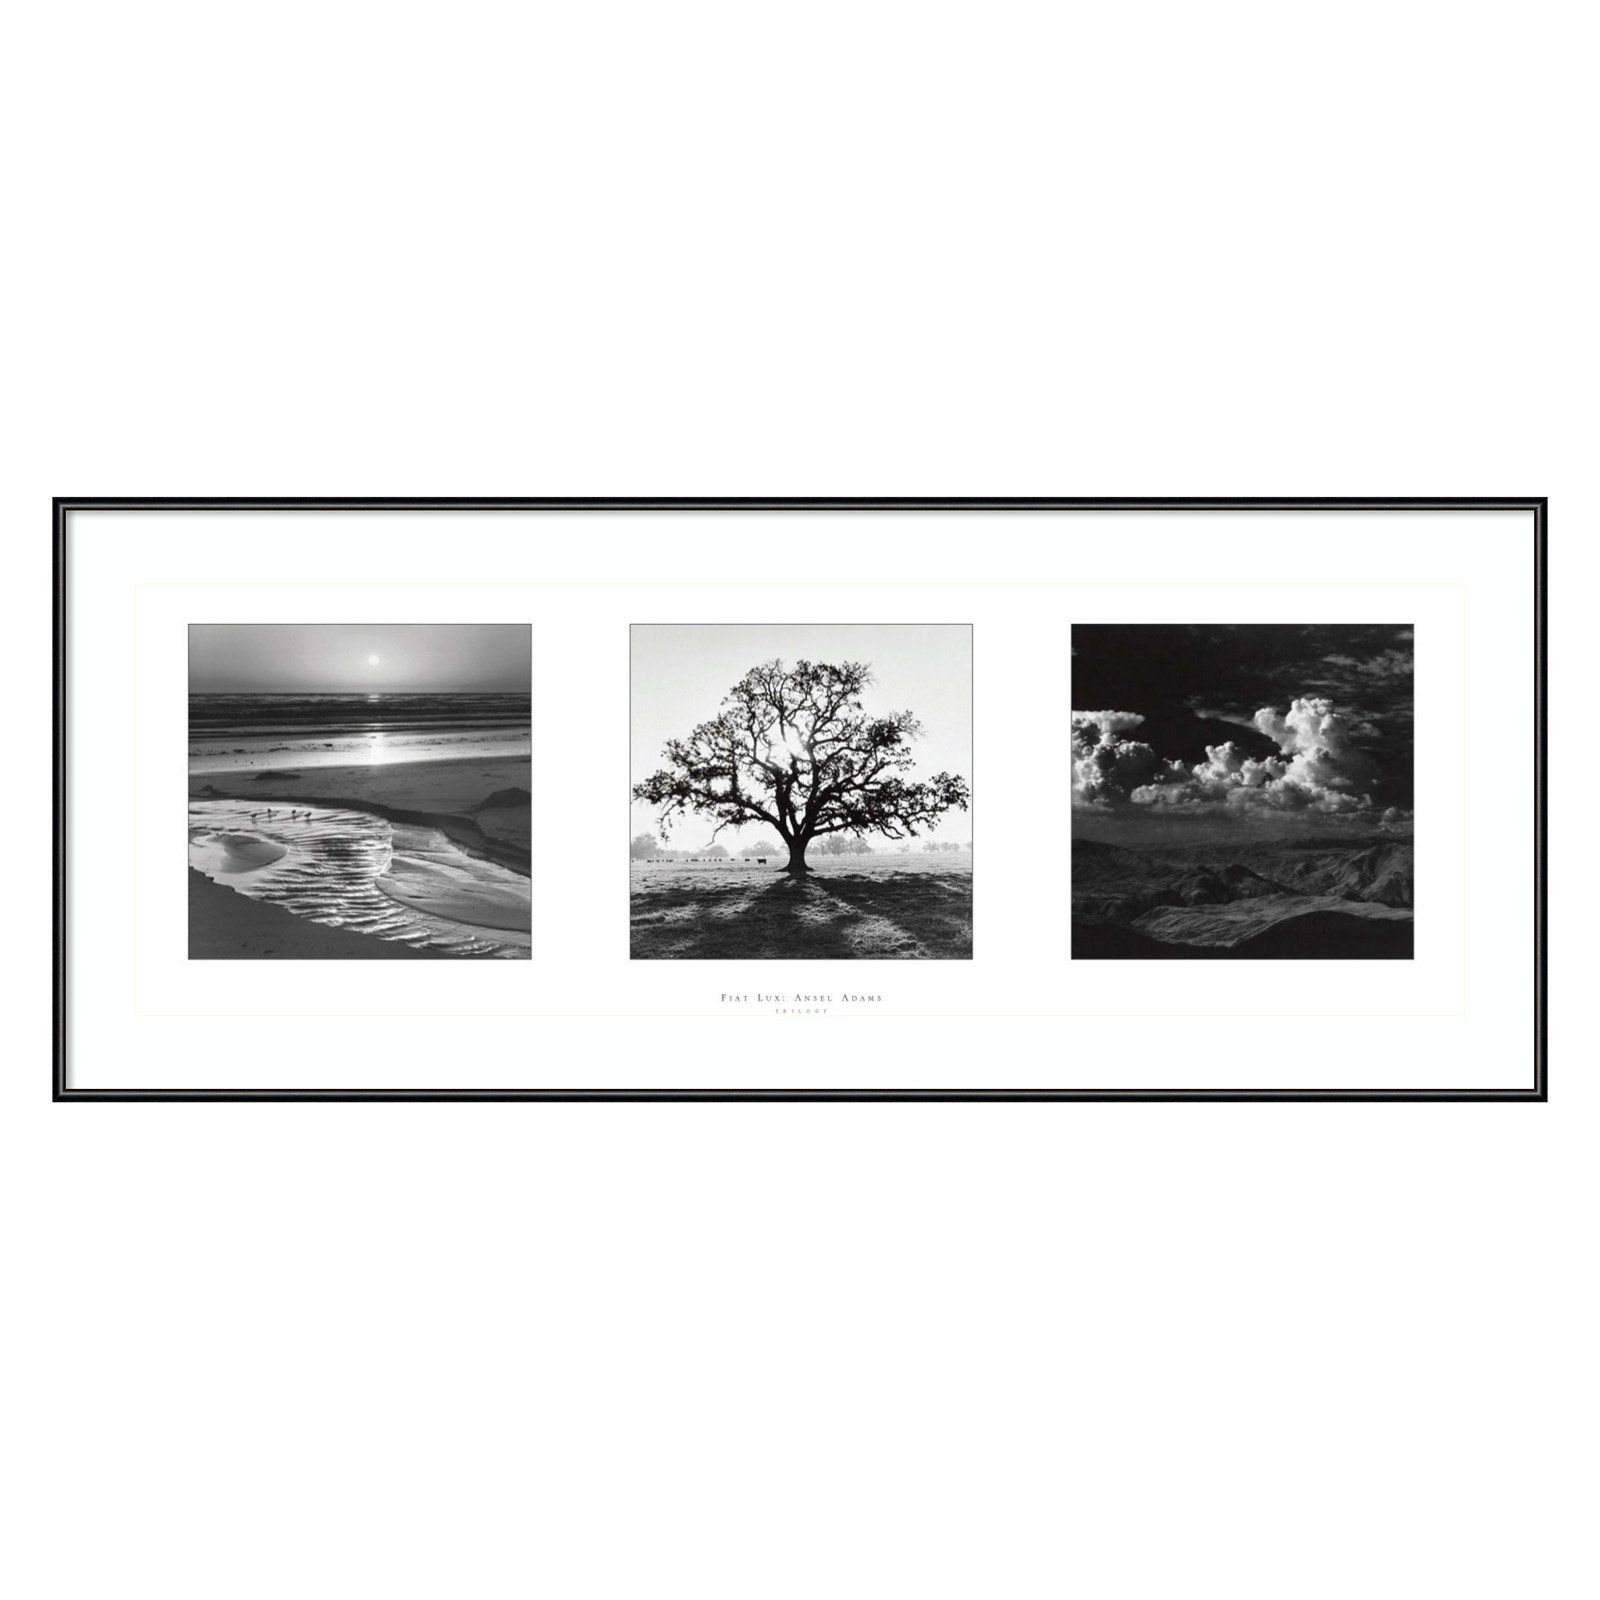 Have To Have It Fiat Lux Trilogy Framed Wall Art By Ansel Adams 36 01w X 14 01h In 236 99 Hayneed Modern Wall Art Canvas Ansel Adams Framed Art Prints